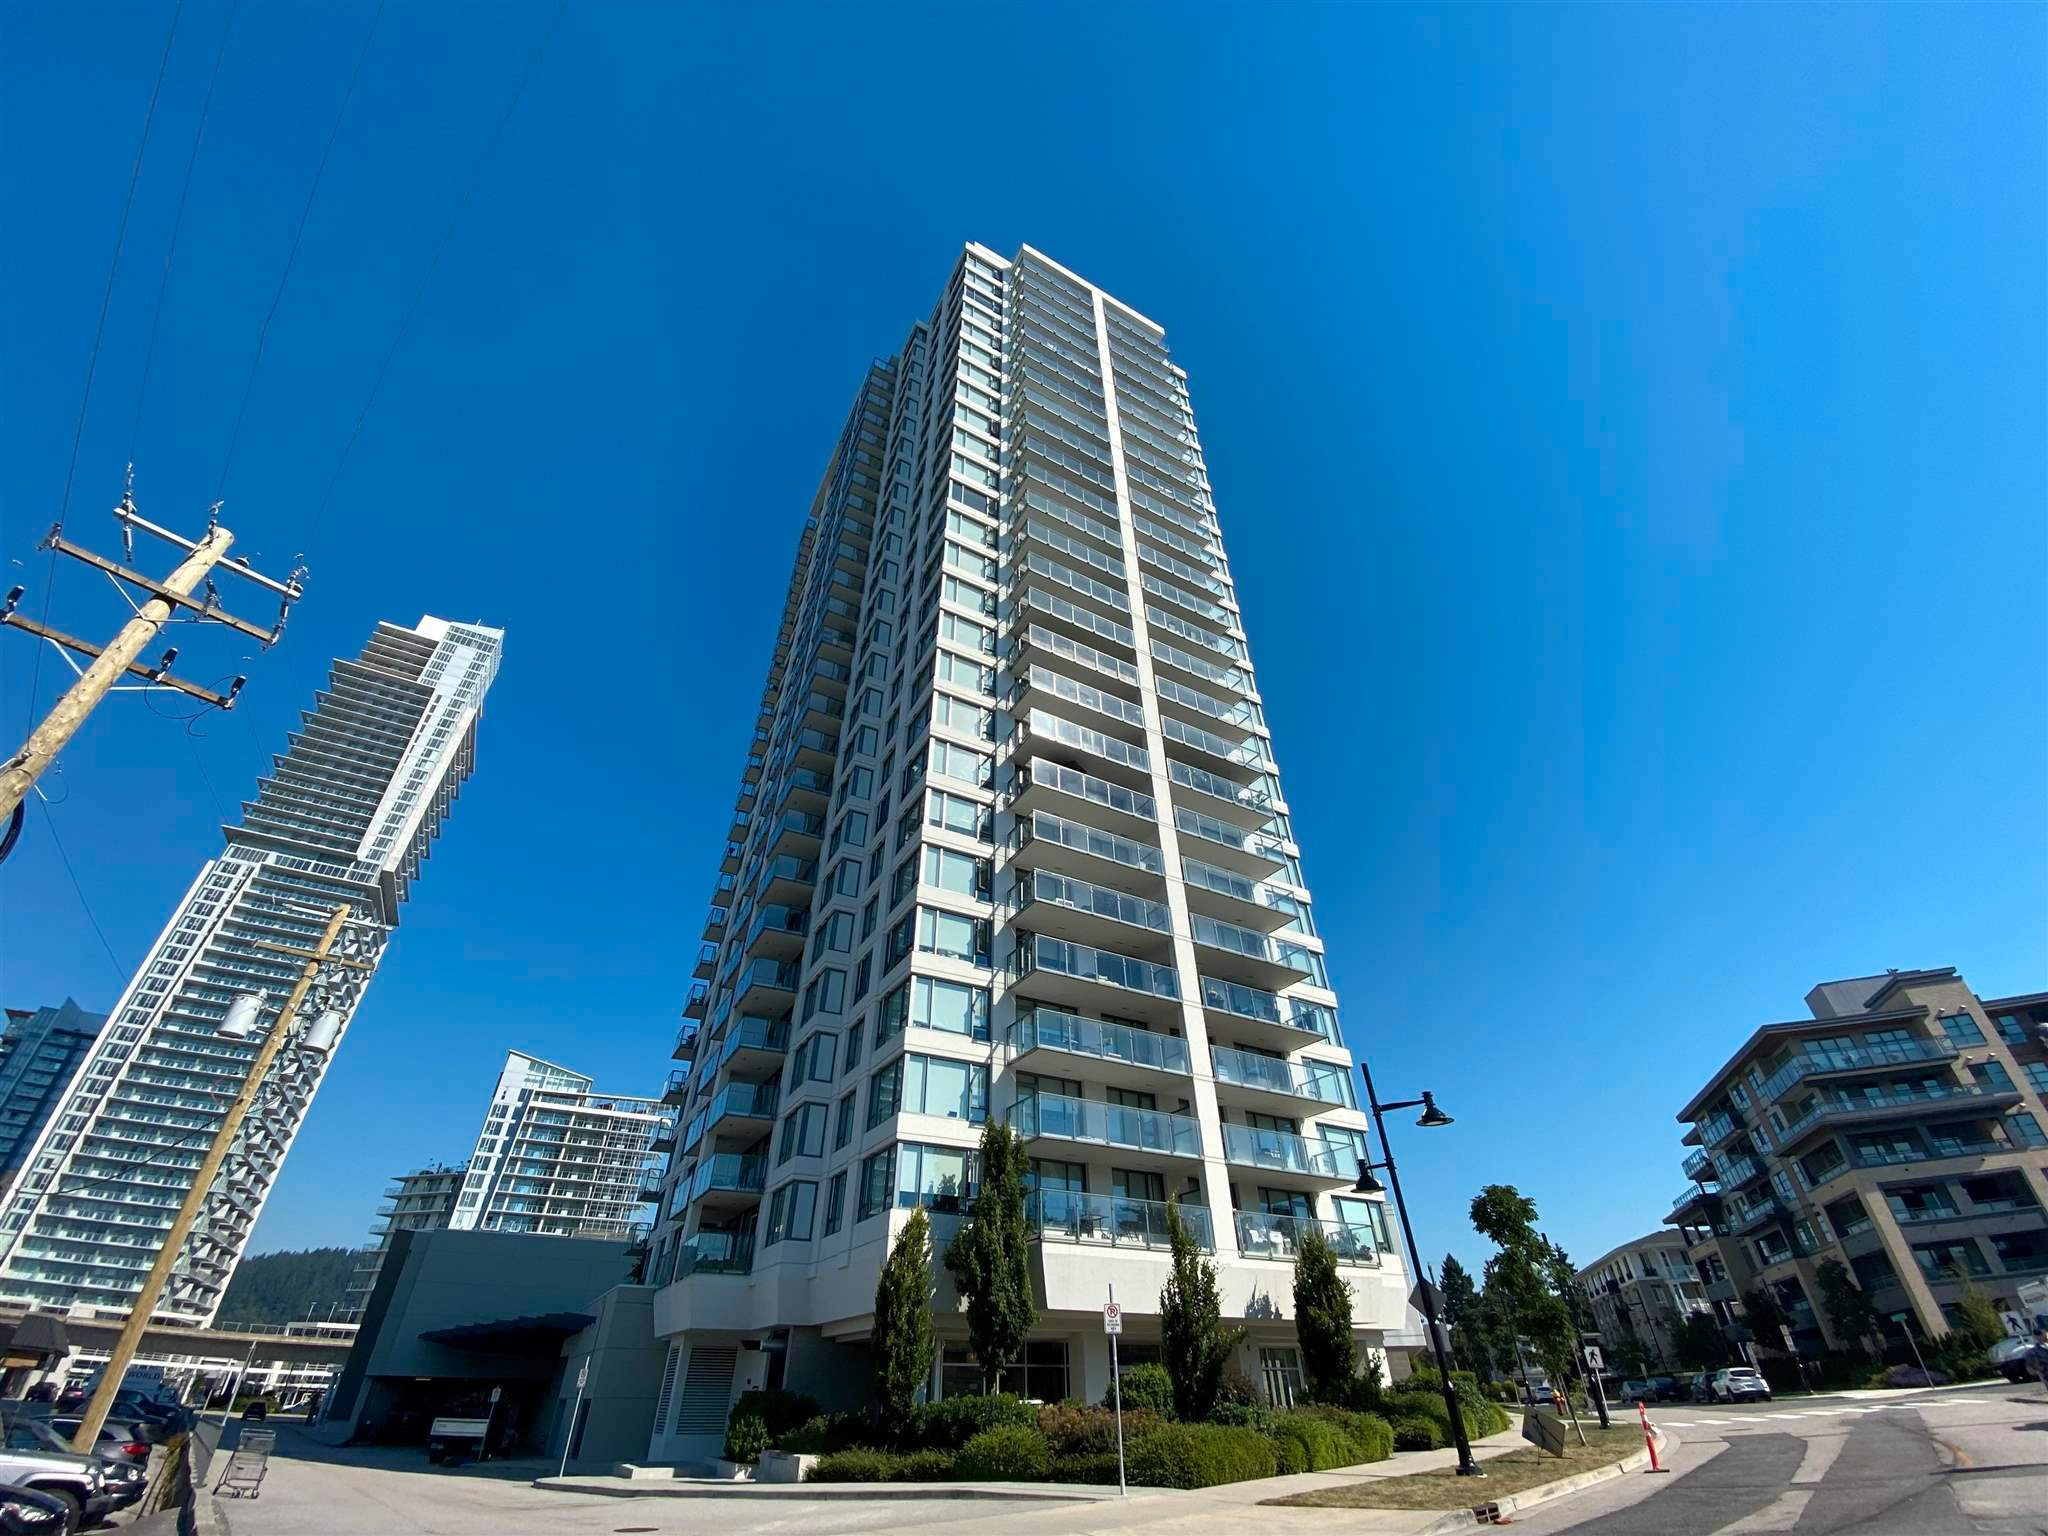 """Main Photo: 1506 570 EMERSON Street in Coquitlam: Coquitlam West Condo for sale in """"Uptown 2"""" : MLS®# R2597543"""